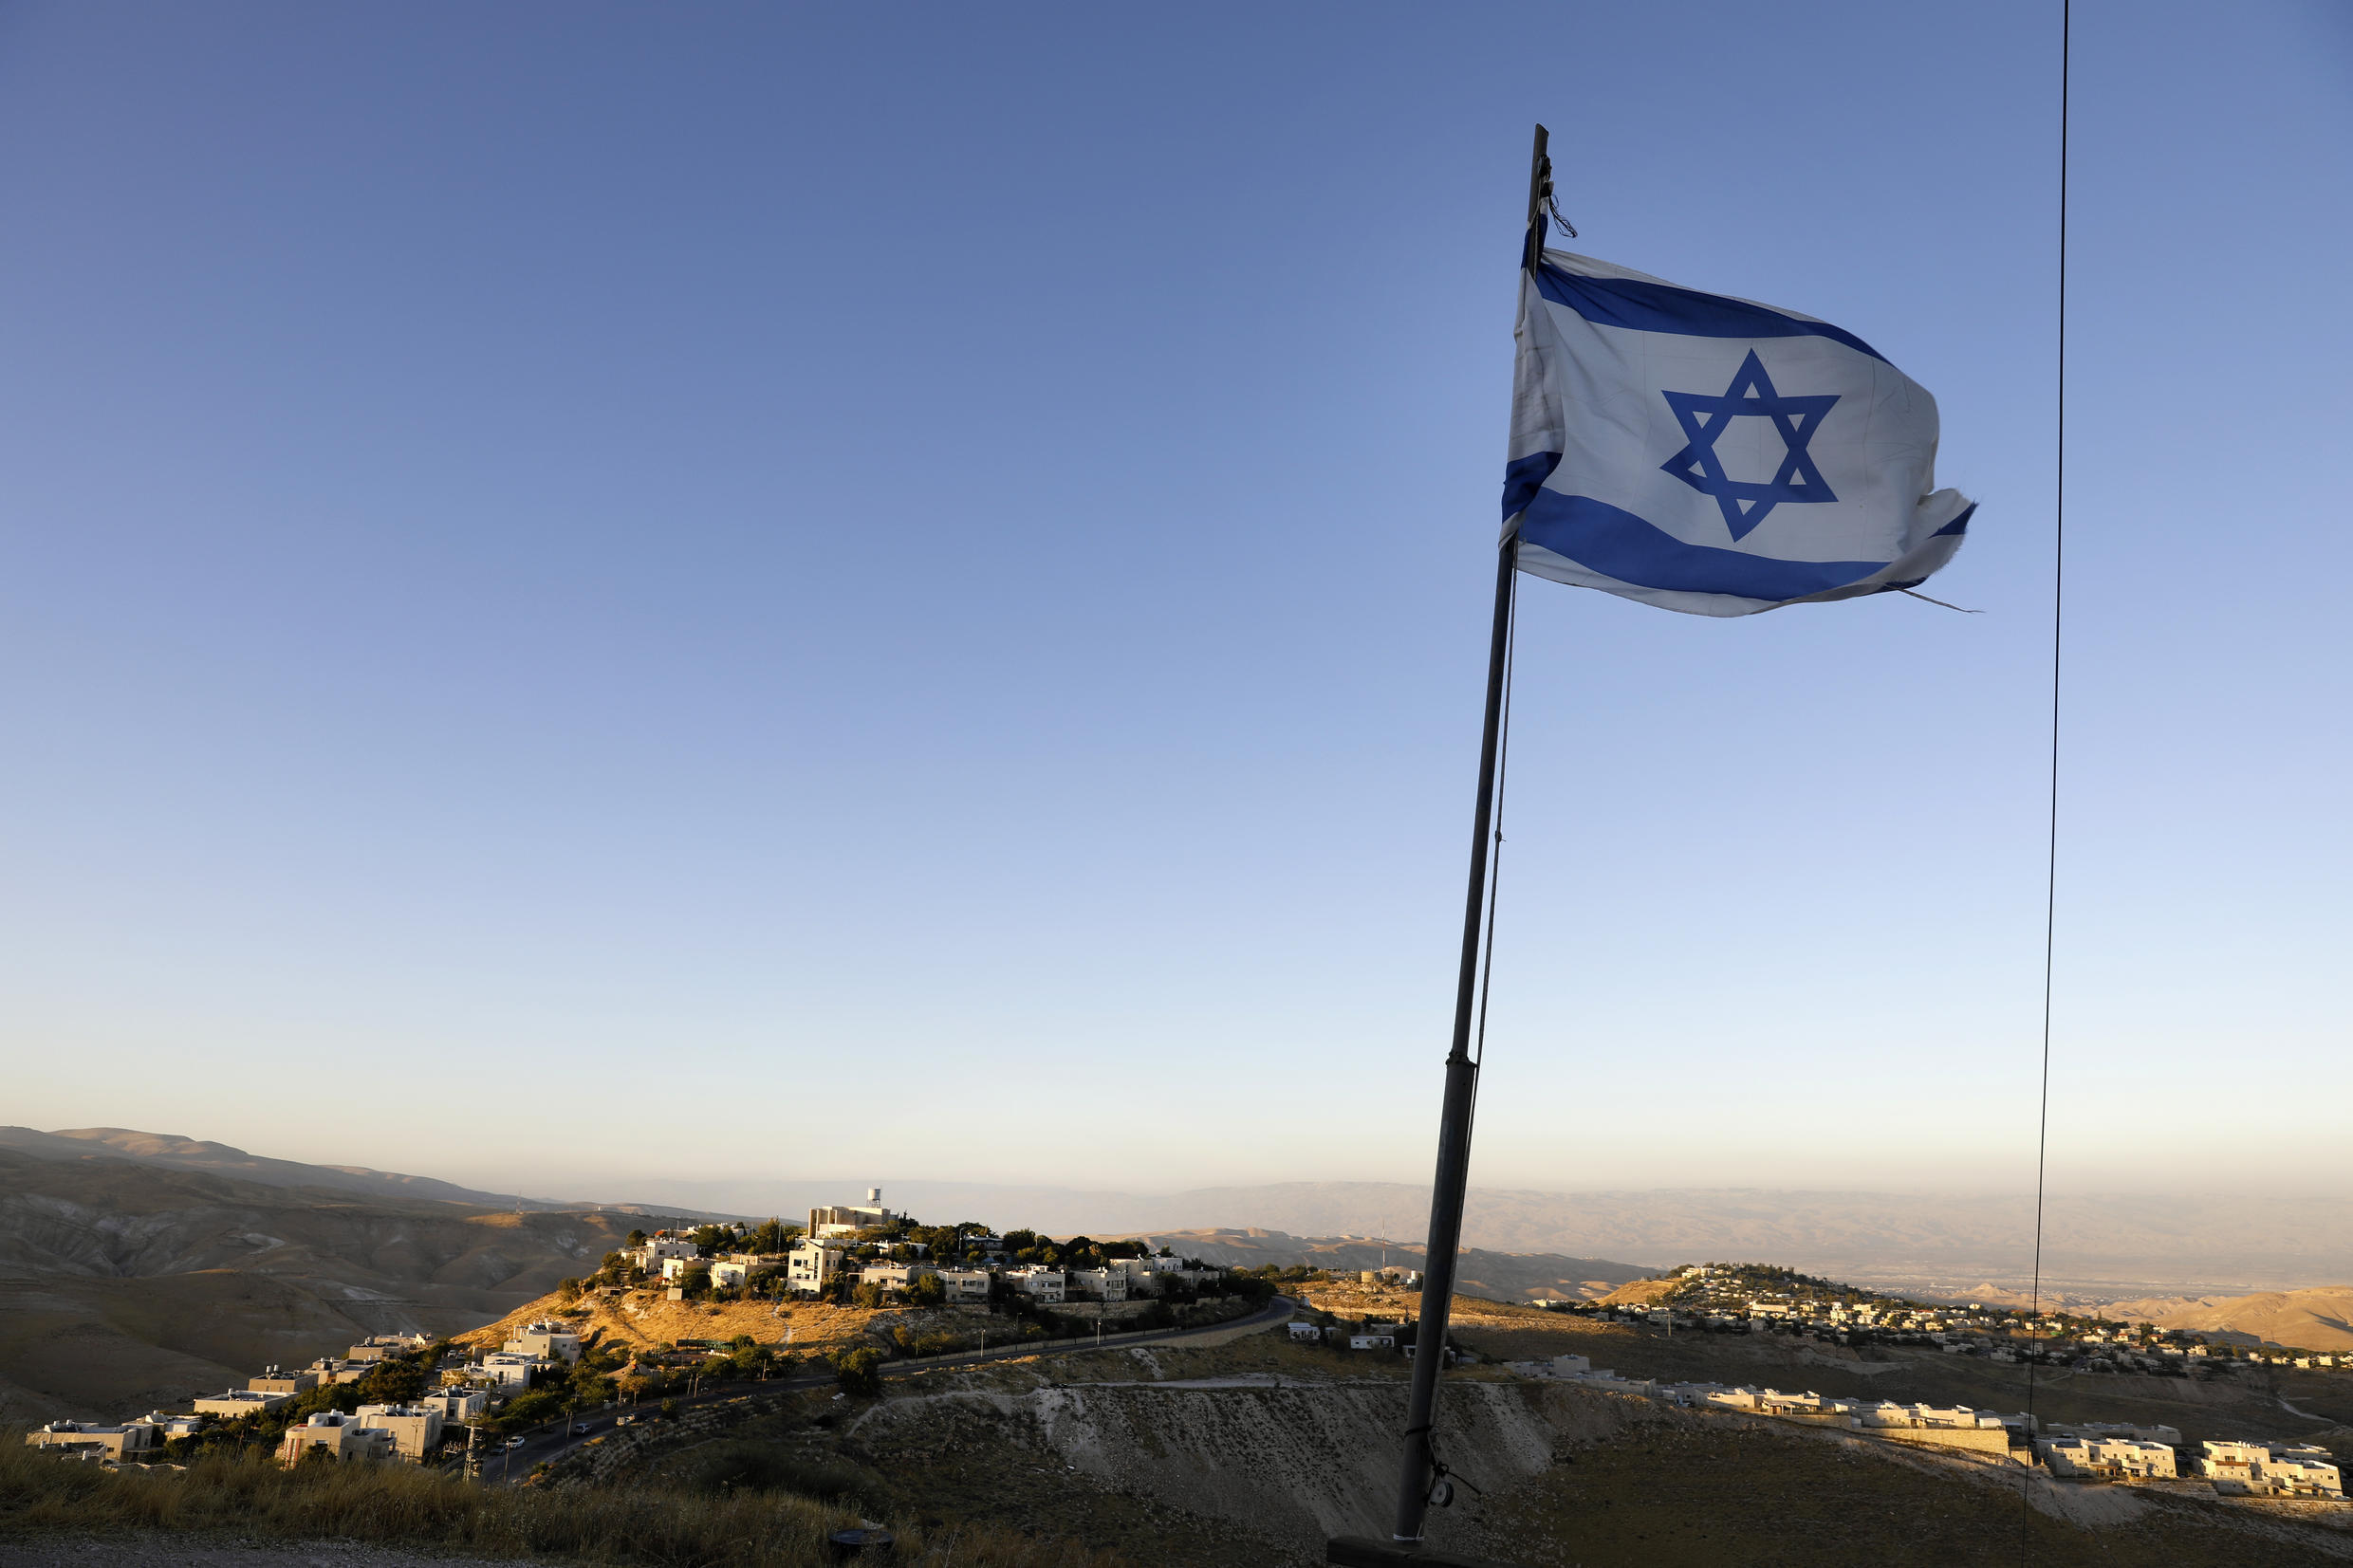 A US proposal for Middle East peace has paved the way for Israeli annexation of settlements in the occupied West Bank that are considered illegal under international law.